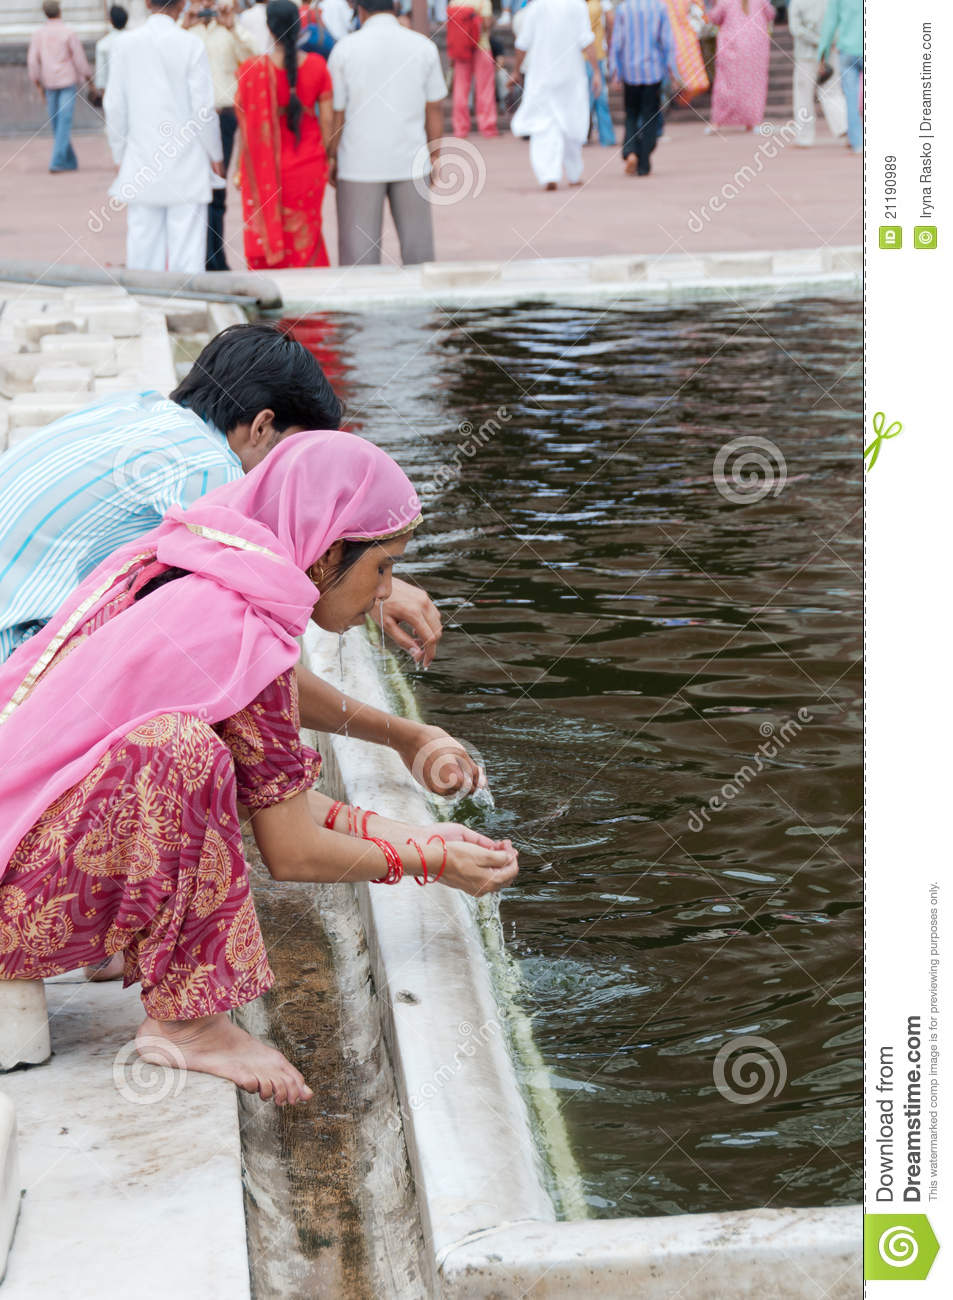 Ablution in front of India s mosque